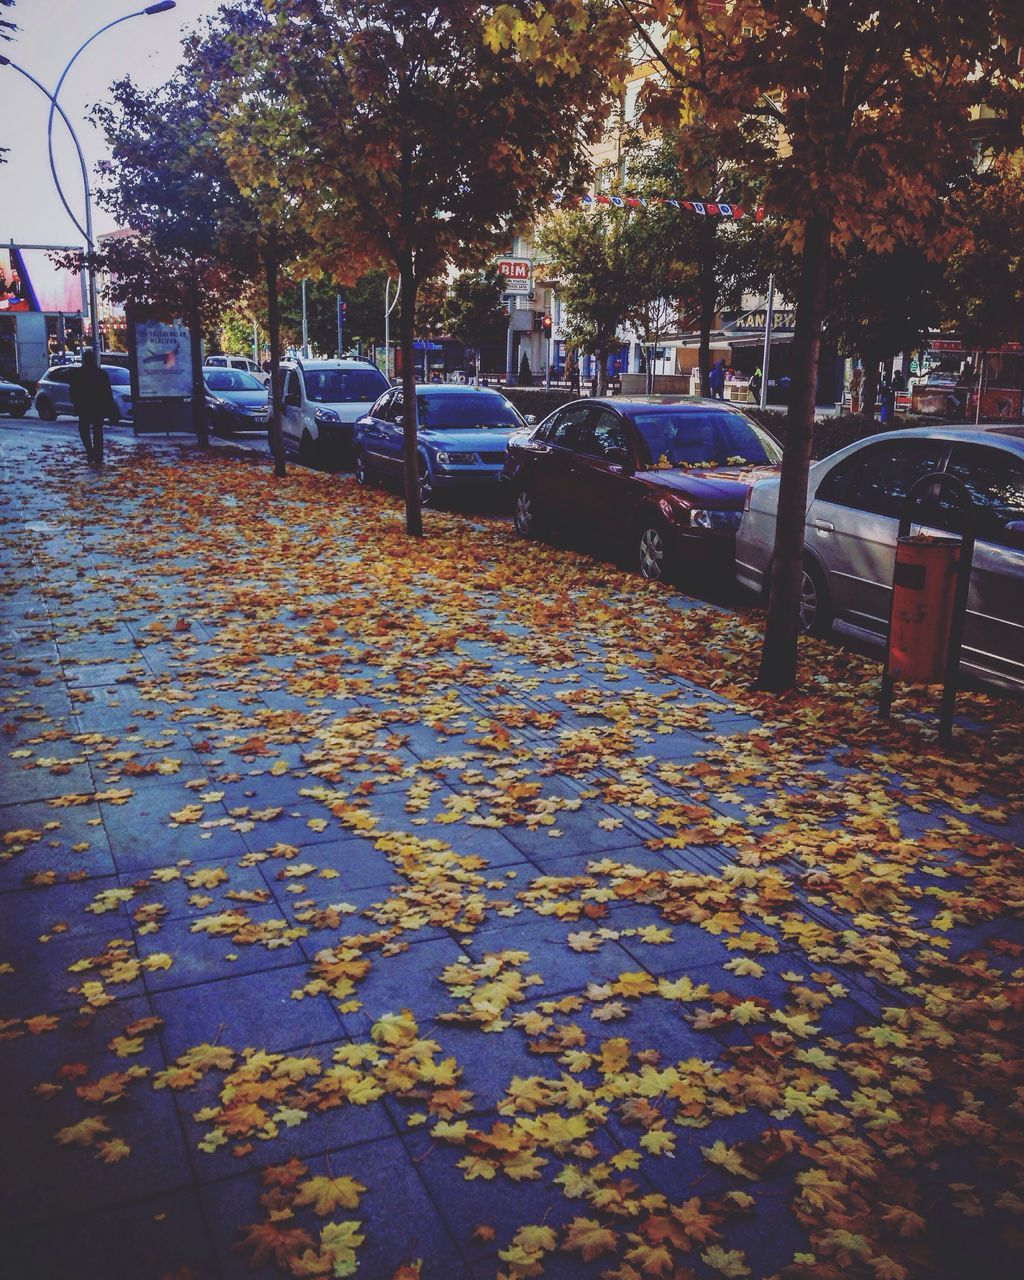 autumn, change, leaf, tree, nature, car, street, outdoors, growth, beauty in nature, day, no people, city